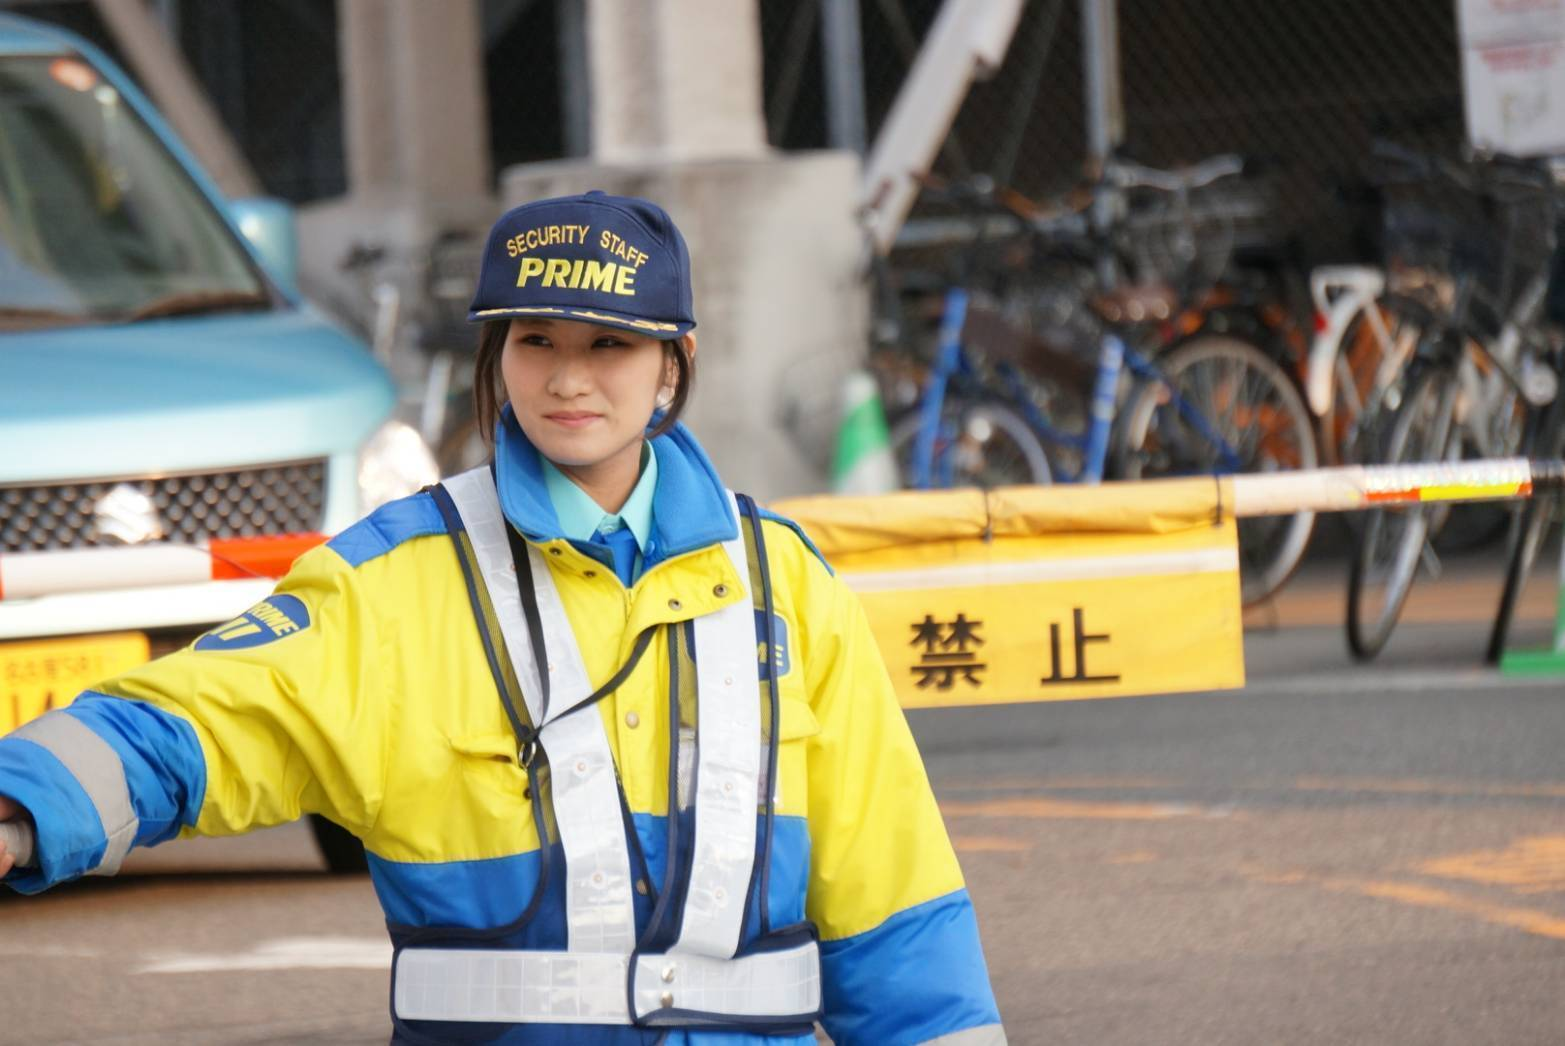 【Aichi】Security Guard Position with Friendly Working Environment